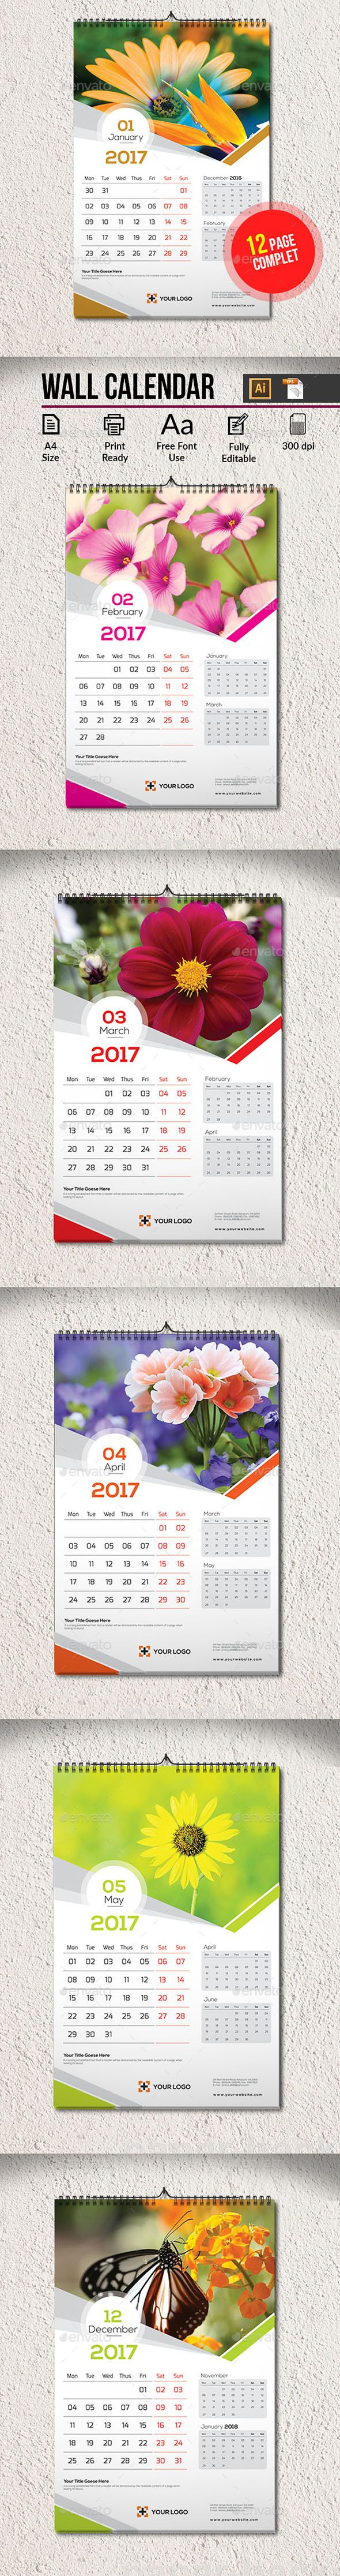 Wall Calendar  Ai Illustrator Calendar  And Illustrators